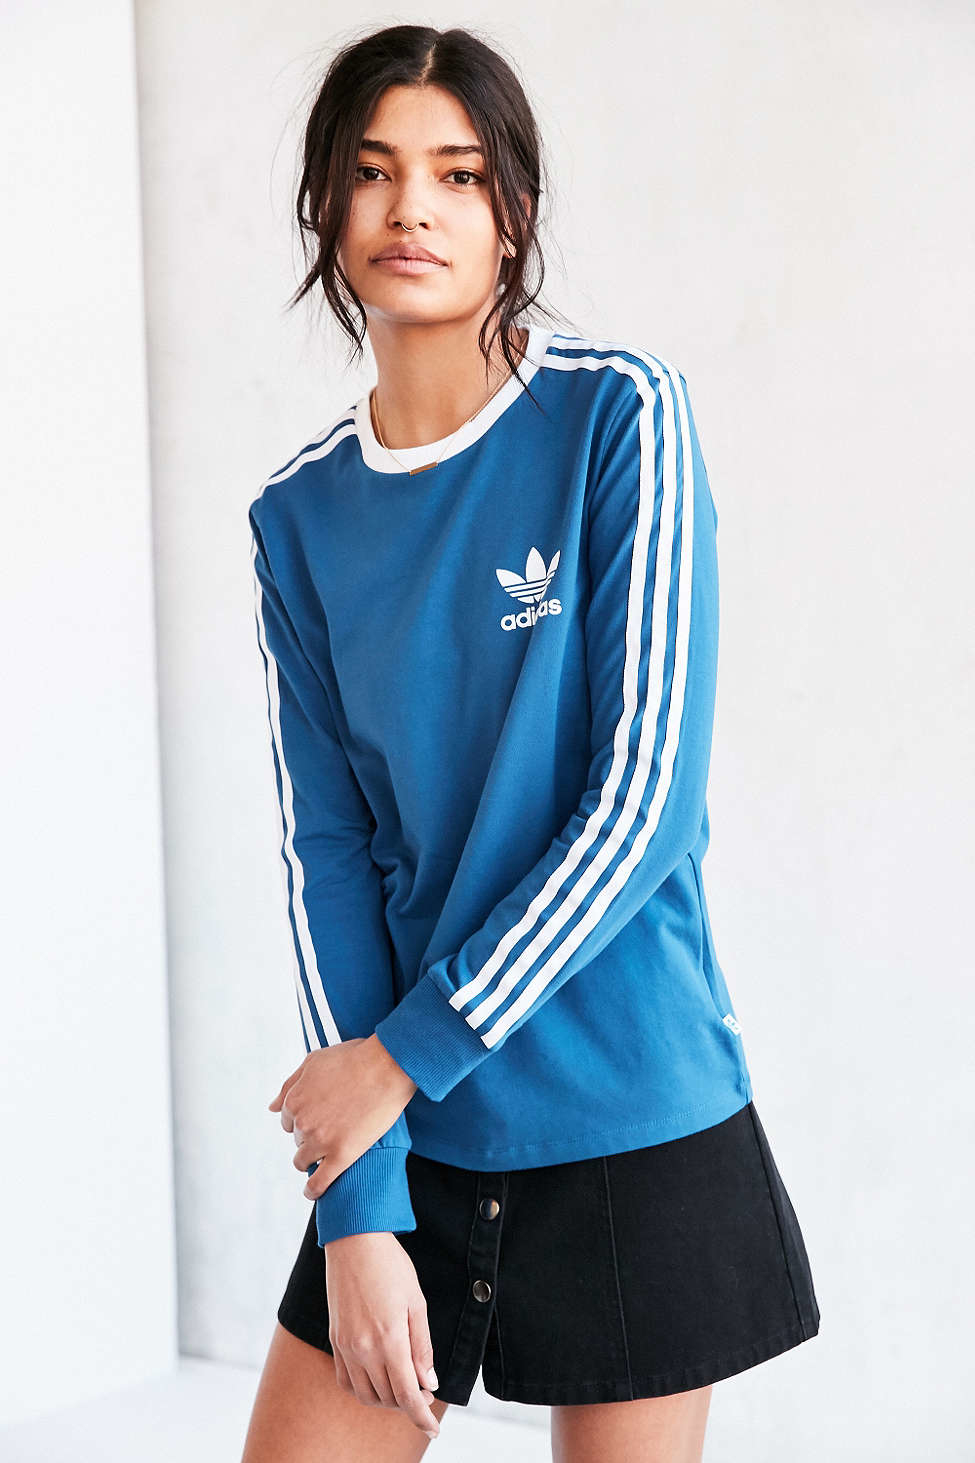 ad2b98d523 adidas Originals Originals 3 Stripes Long-sleeve Tee in Blue - Lyst